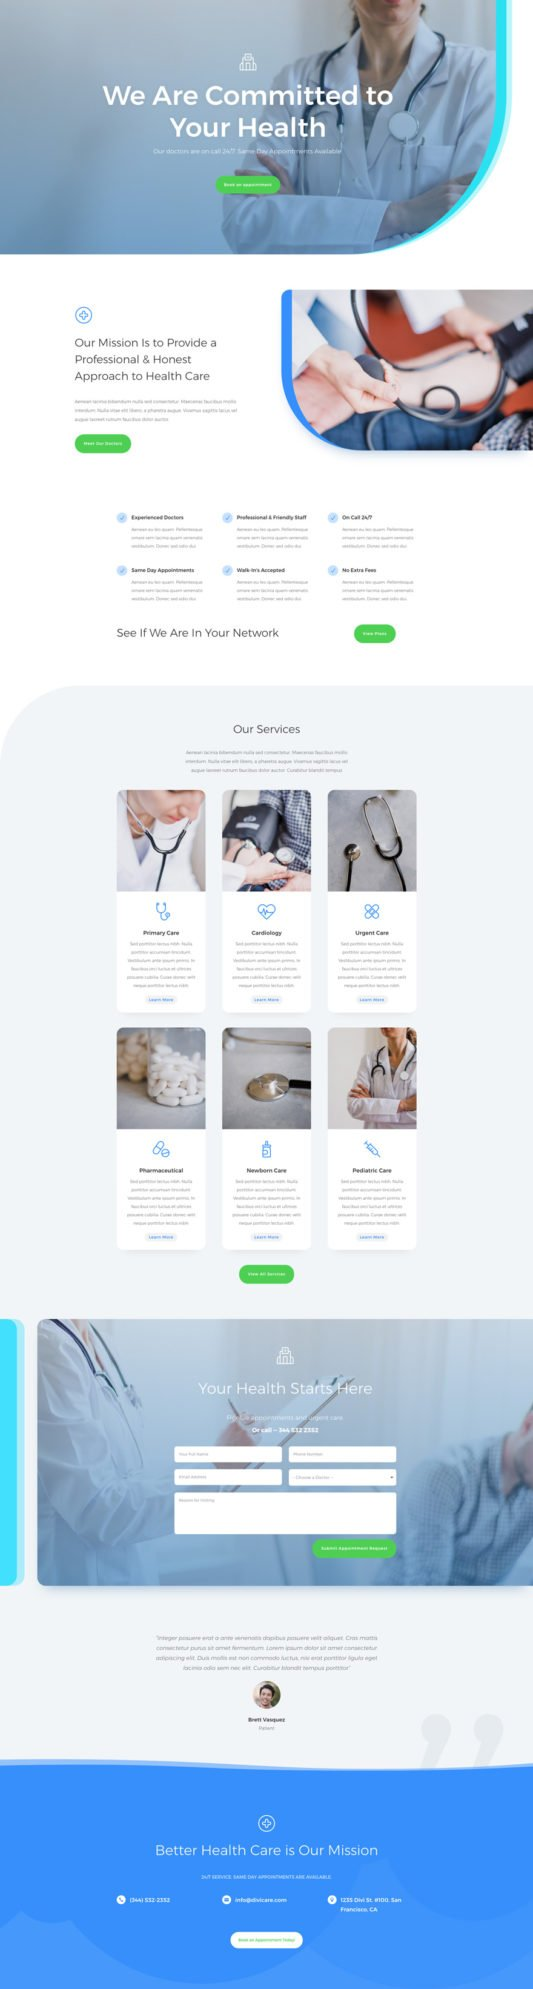 Doctor's Office Landing Page